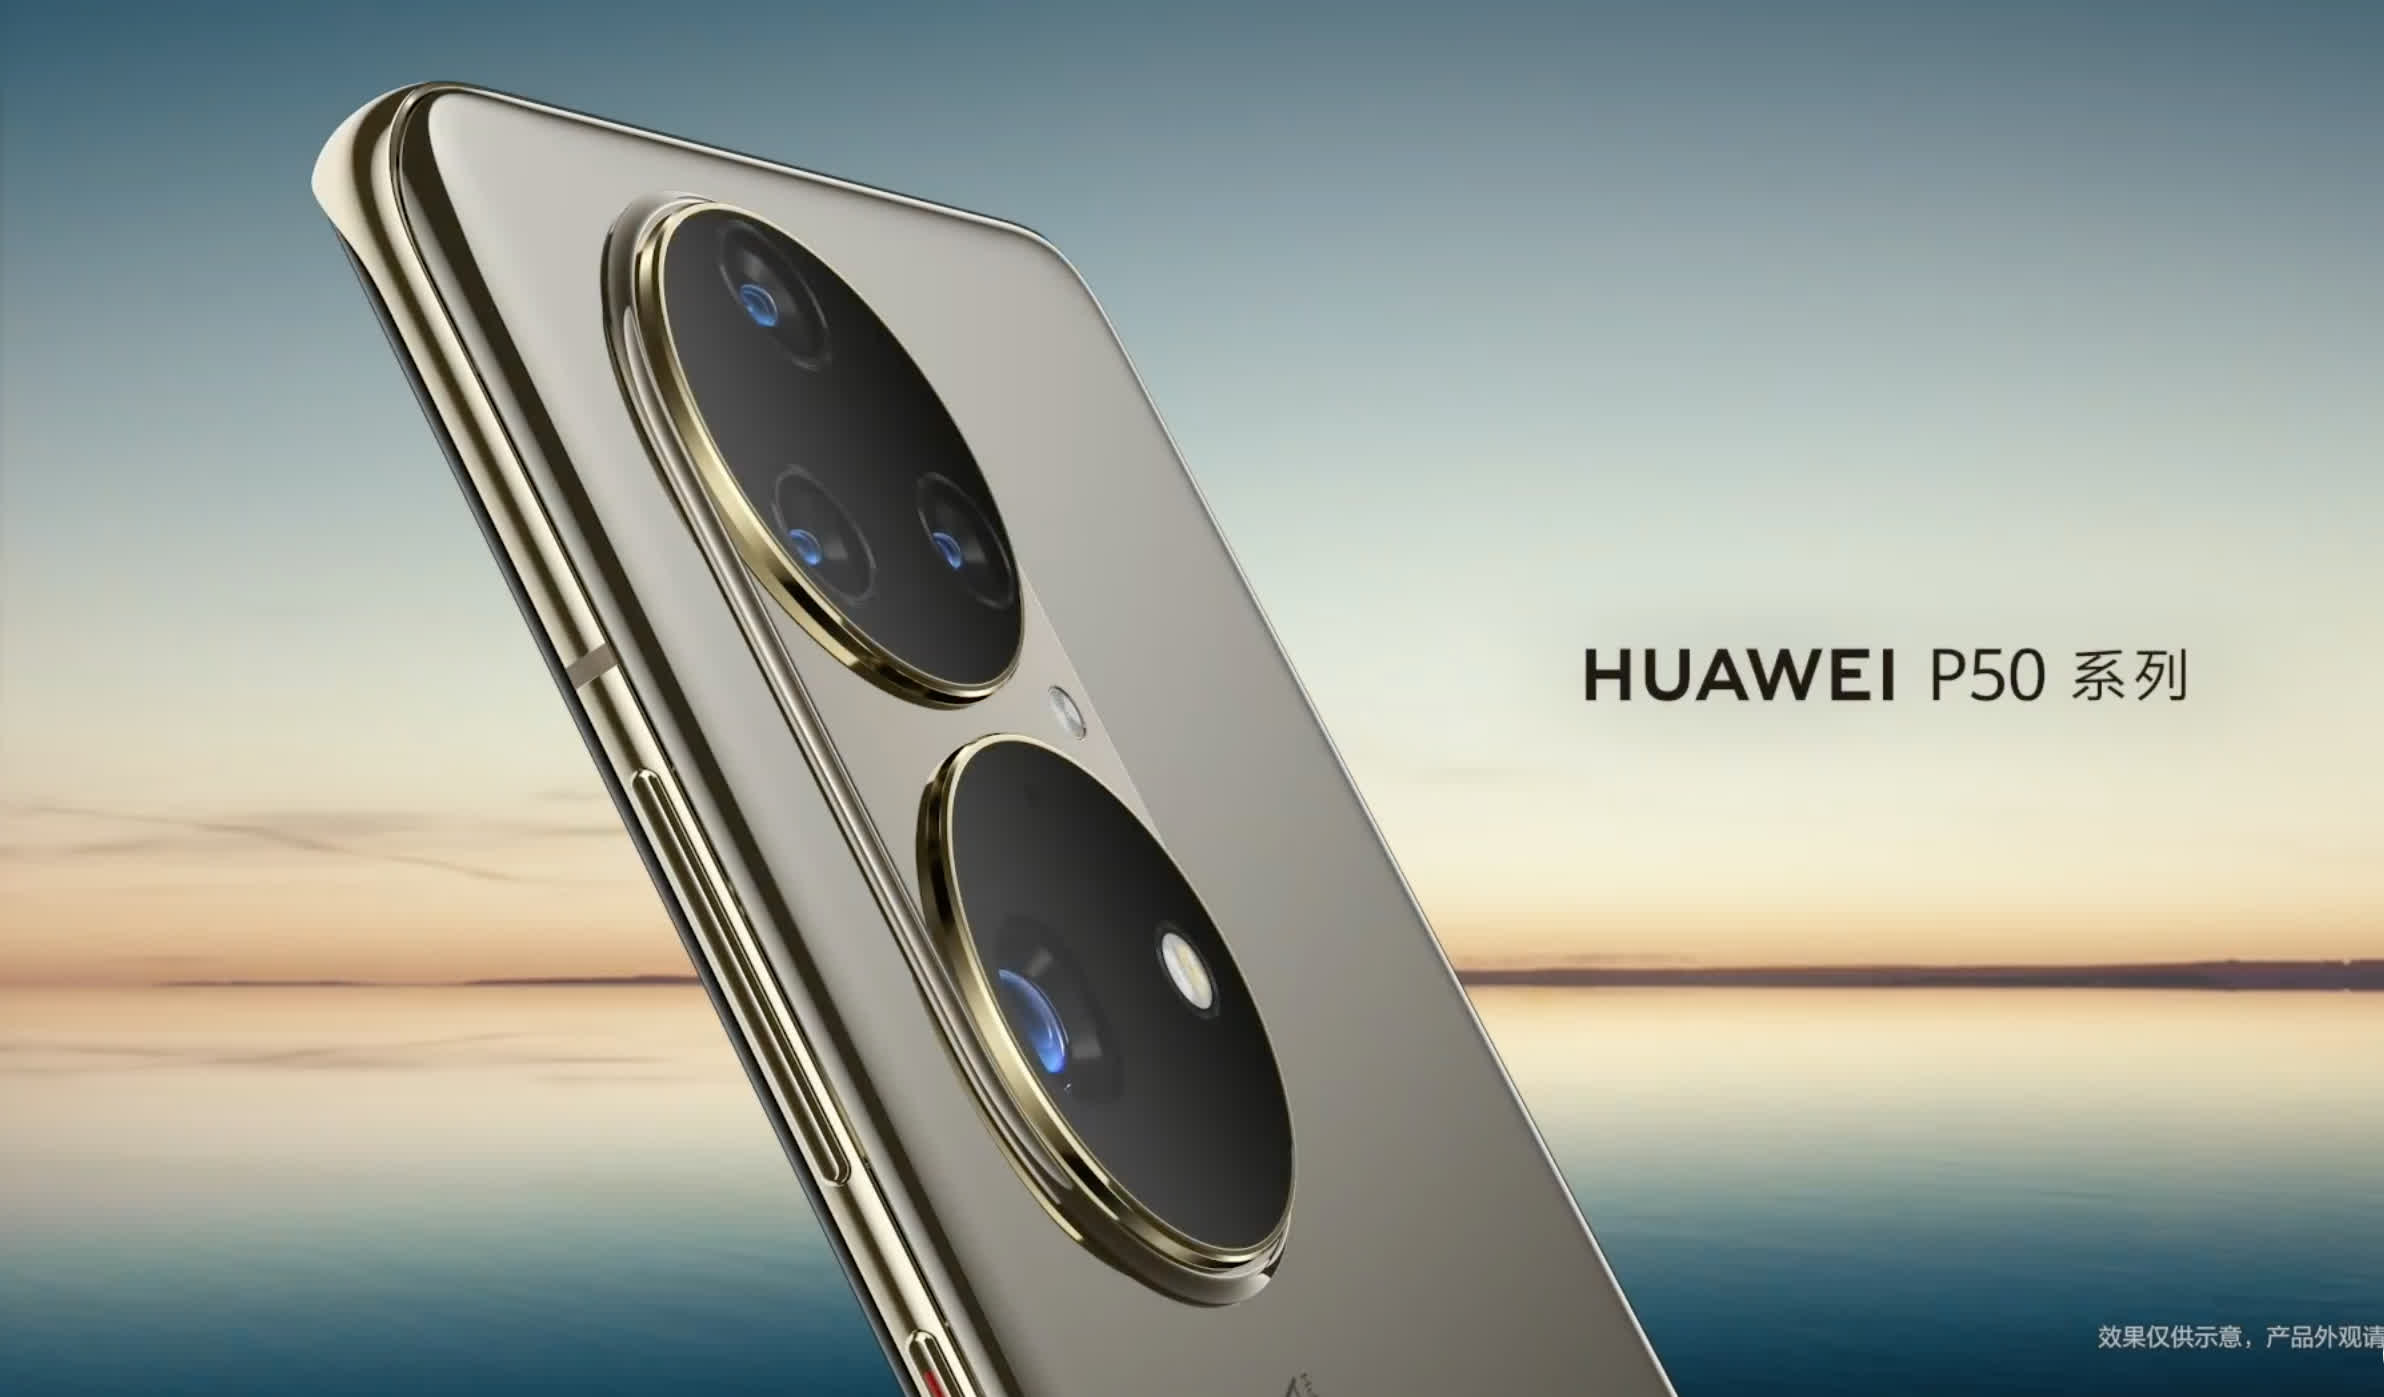 Huawei is confident that it can free itself from Android by copying Apple